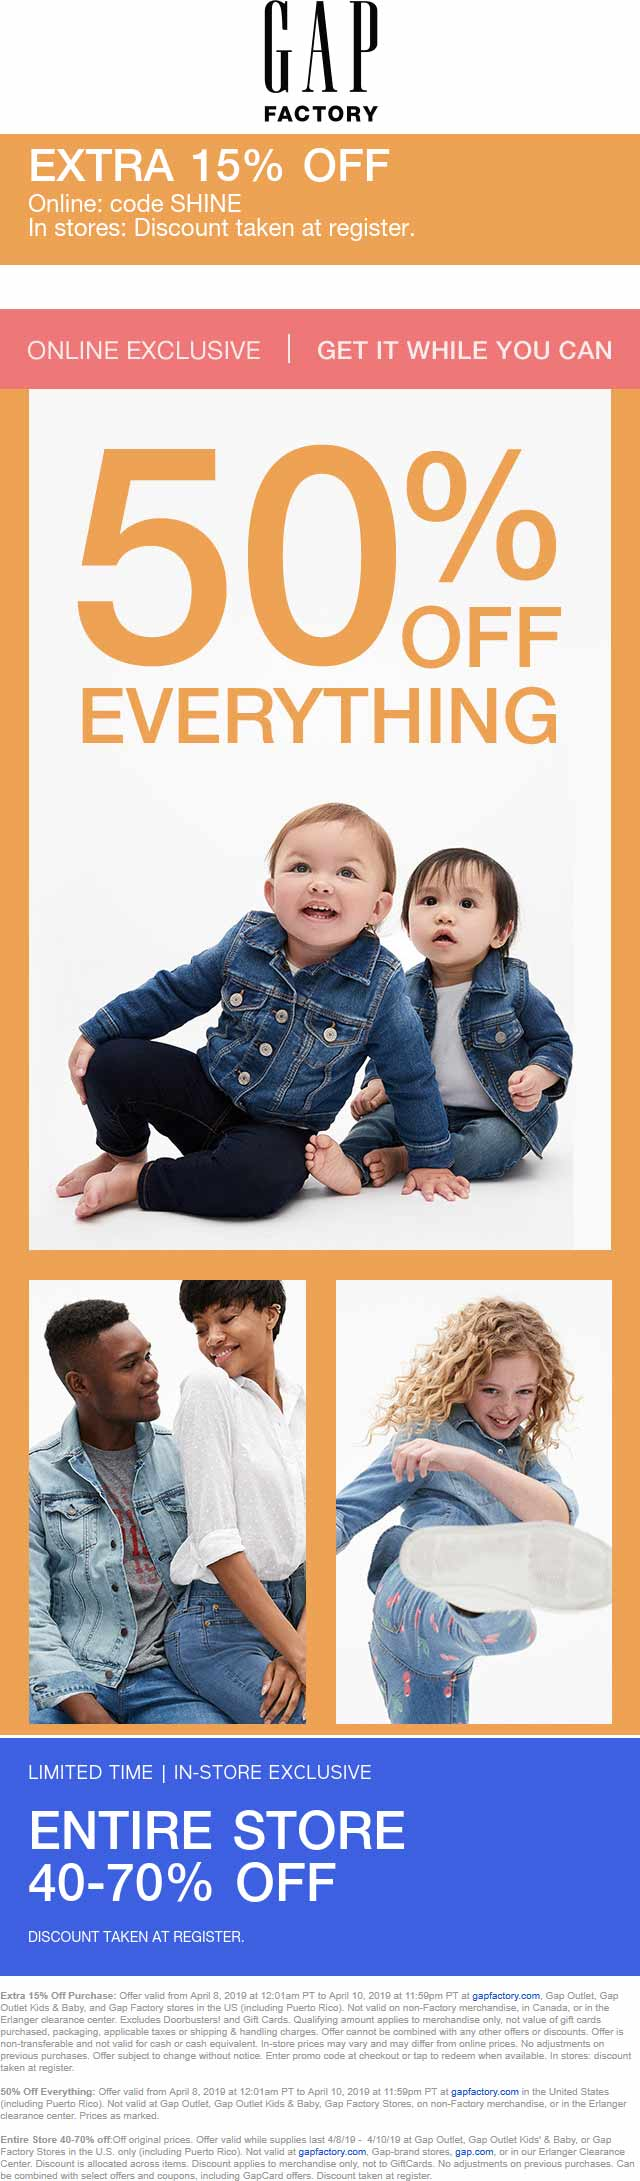 Gap Factory coupons & promo code for [March 2020]